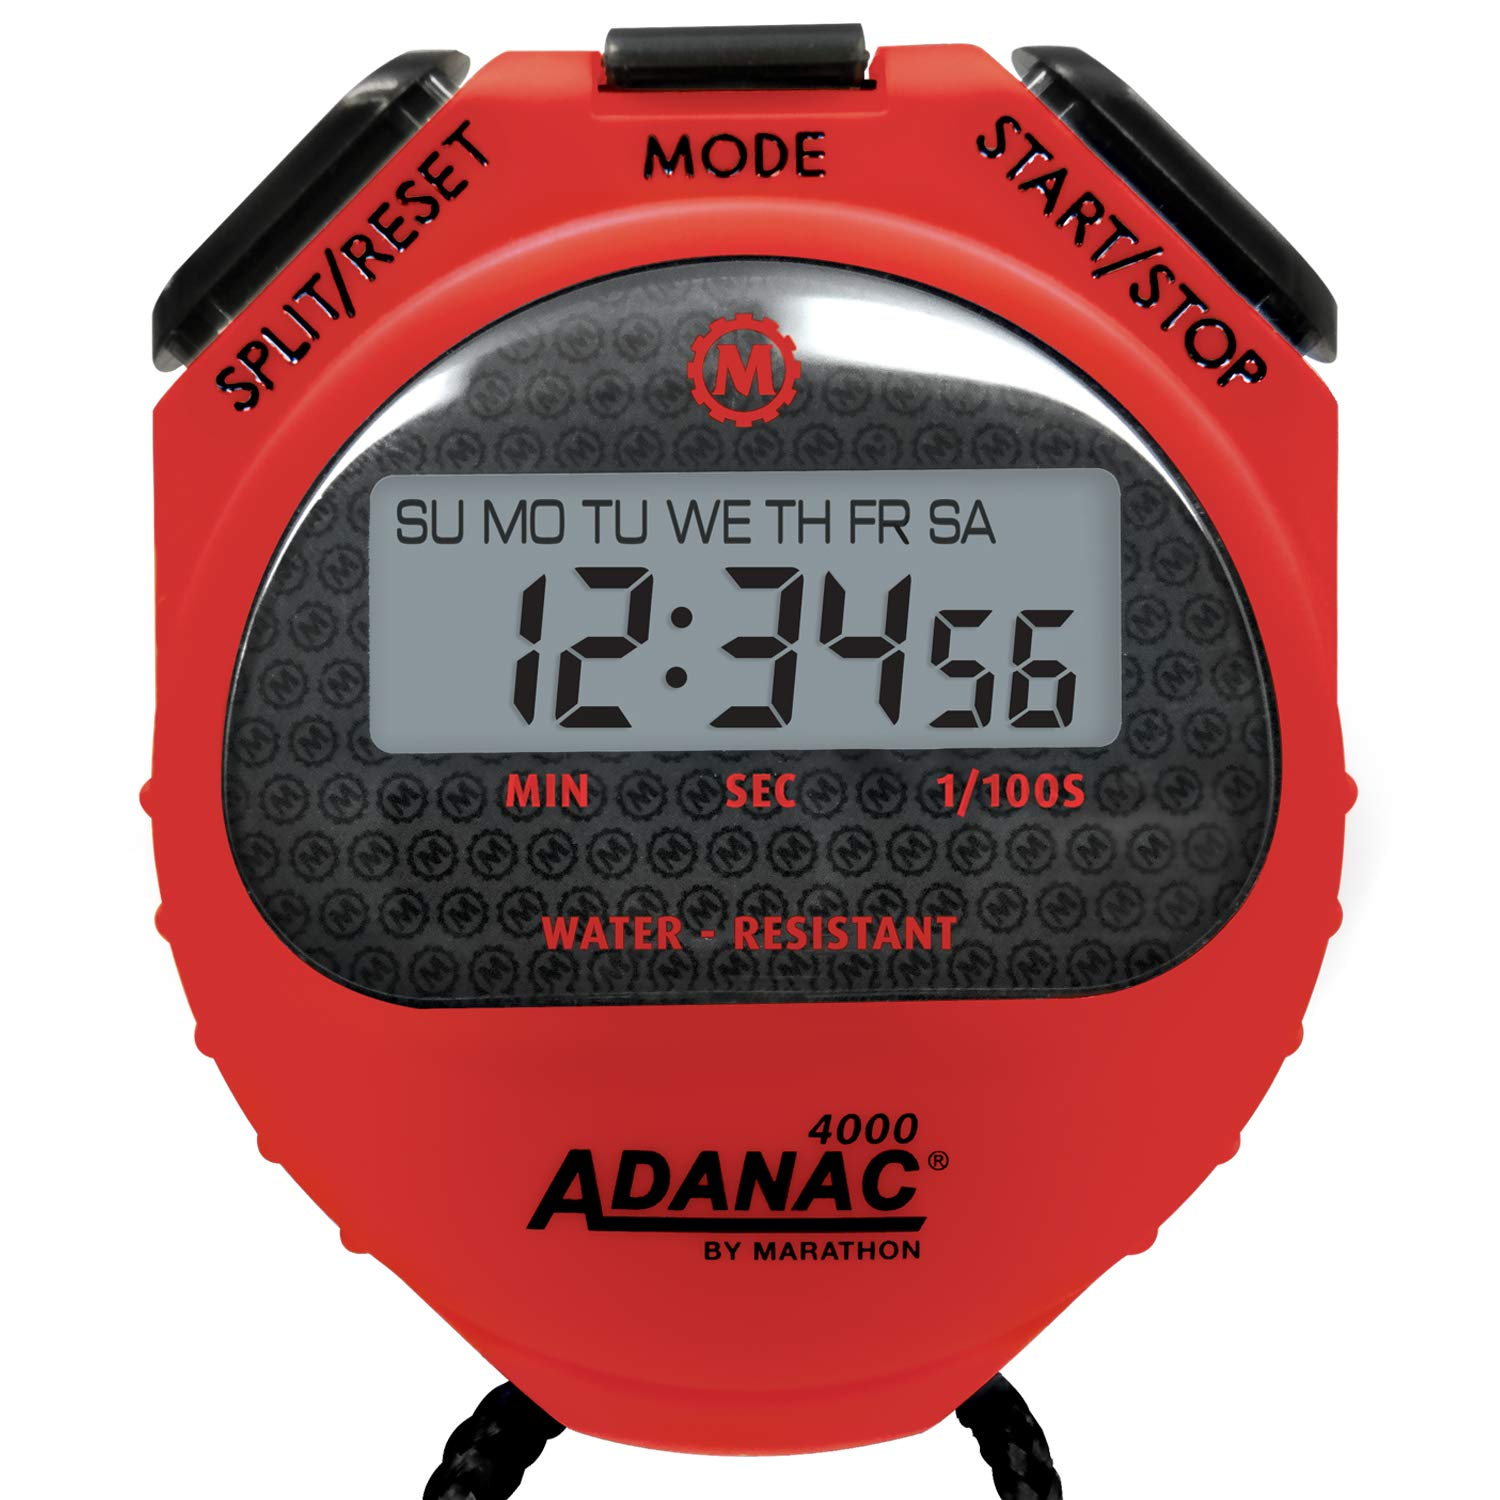 MARATHON Adanac 4000 Digital Stopwatch Timer with Extra Large Display and Buttons, Water Resistant, 2-Year Warranty. Color- Red (Pack of 10)